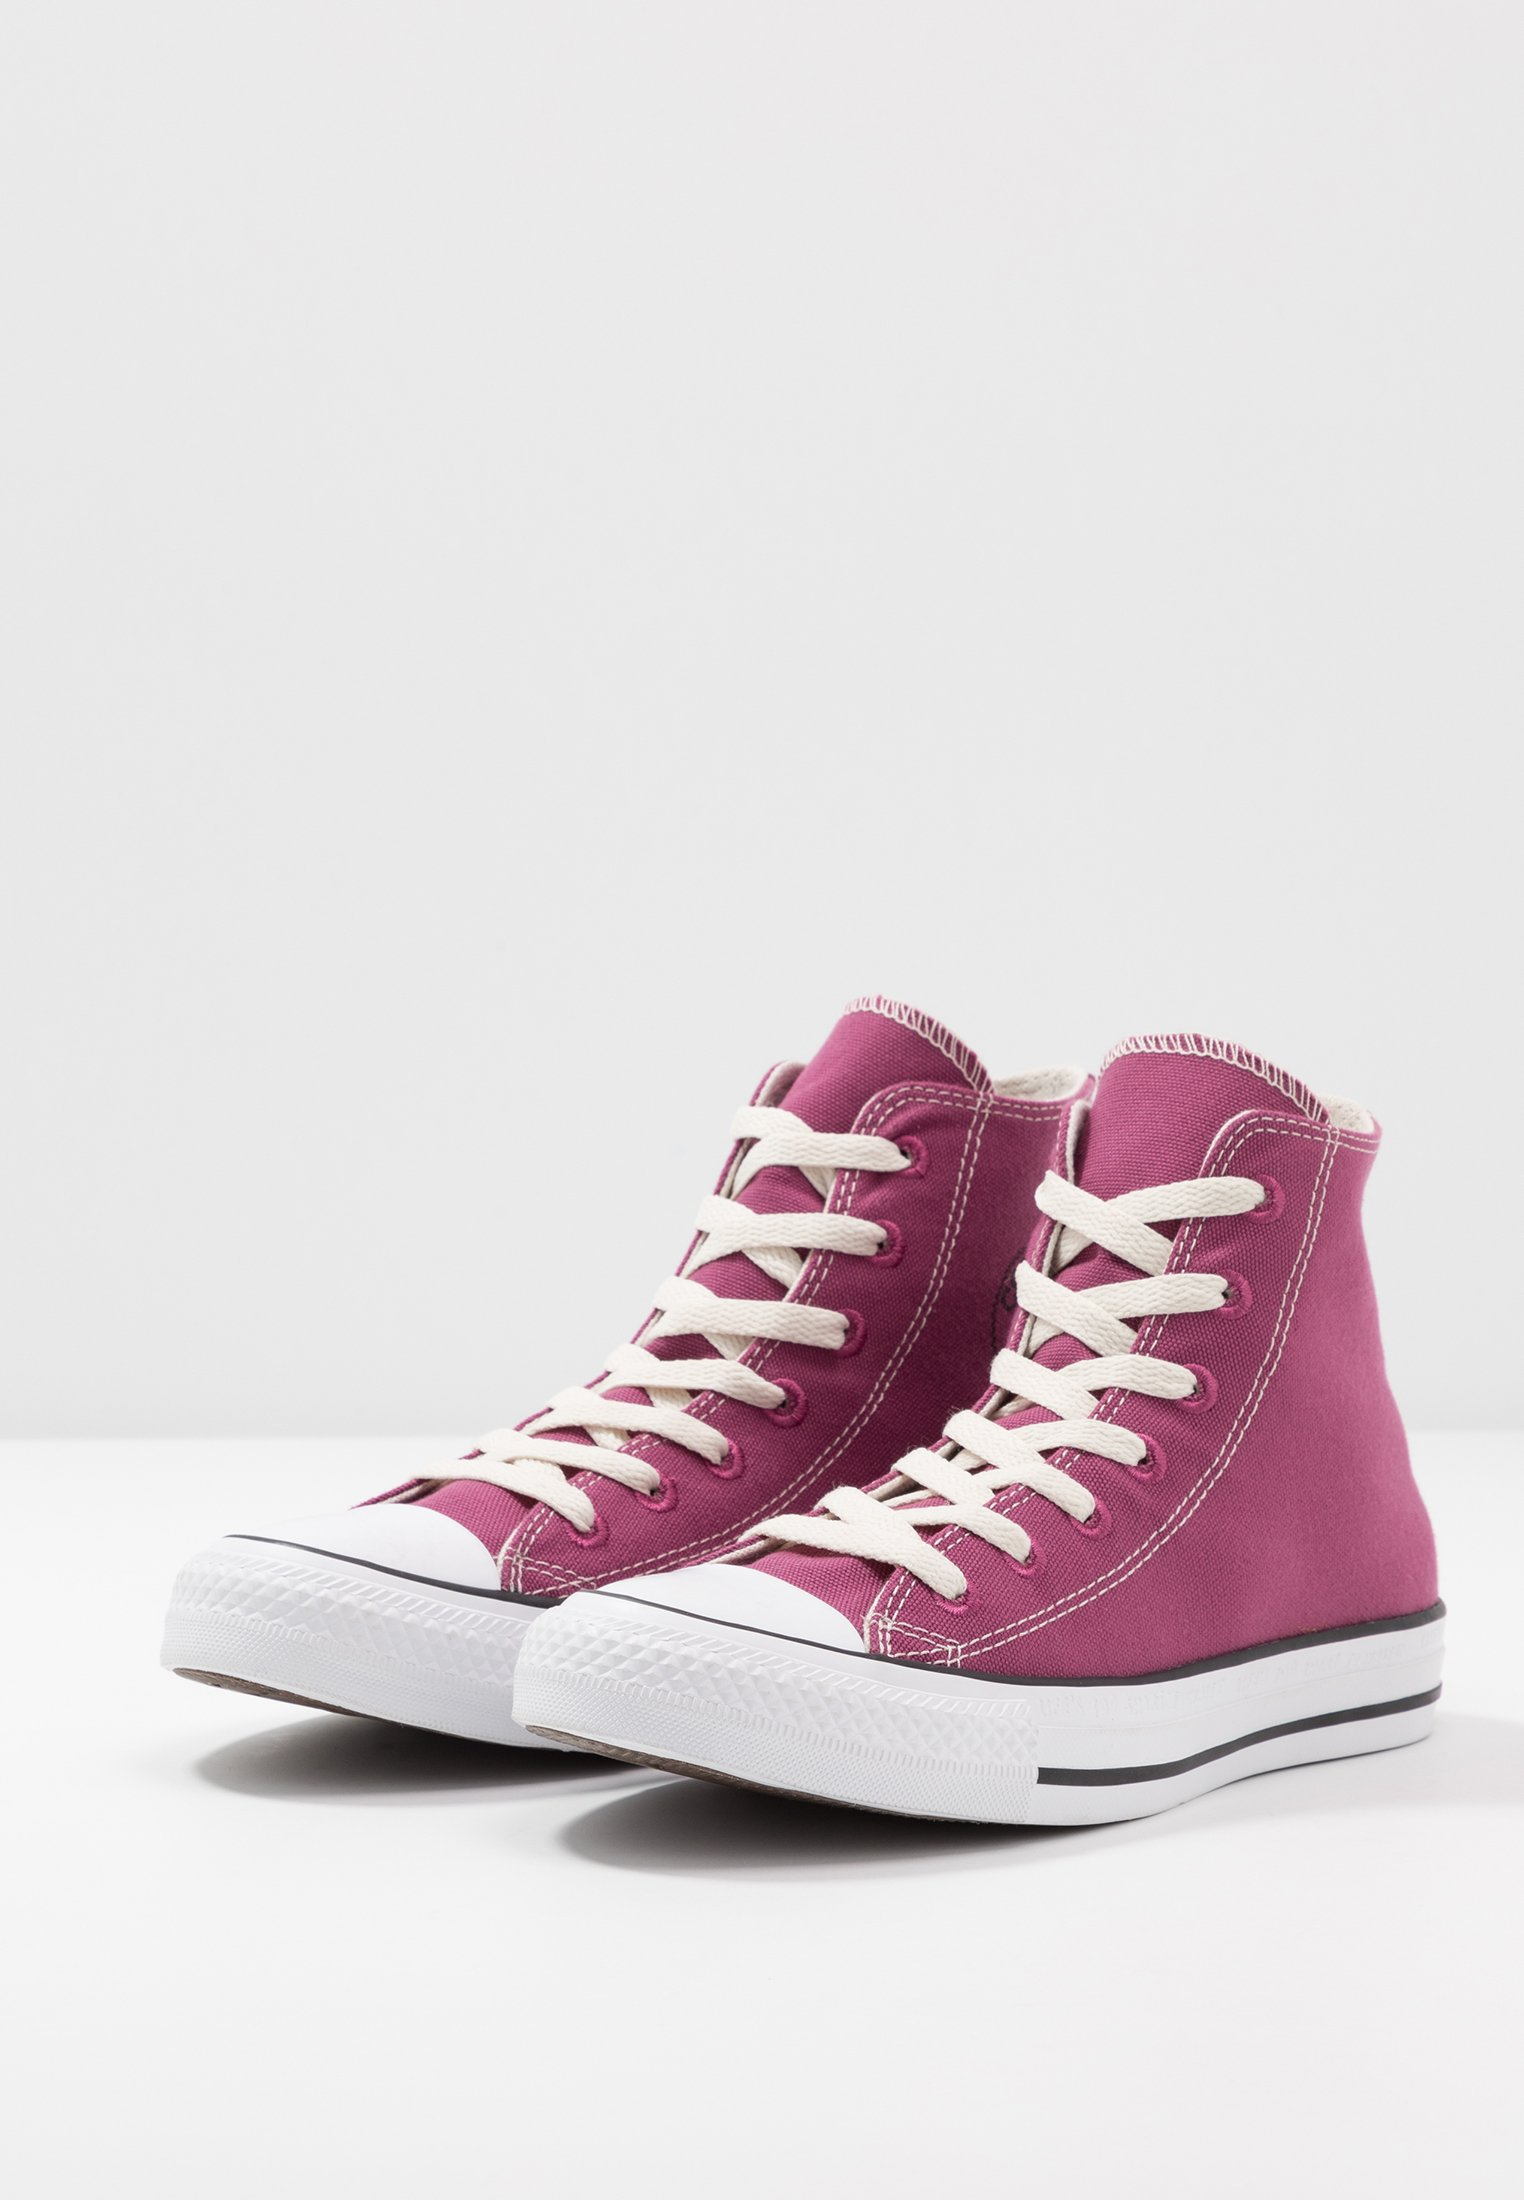 Converse Chuck Taylor All Star Renew Canvas - Sneaker Low Mesa Rose/black/white Black Friday